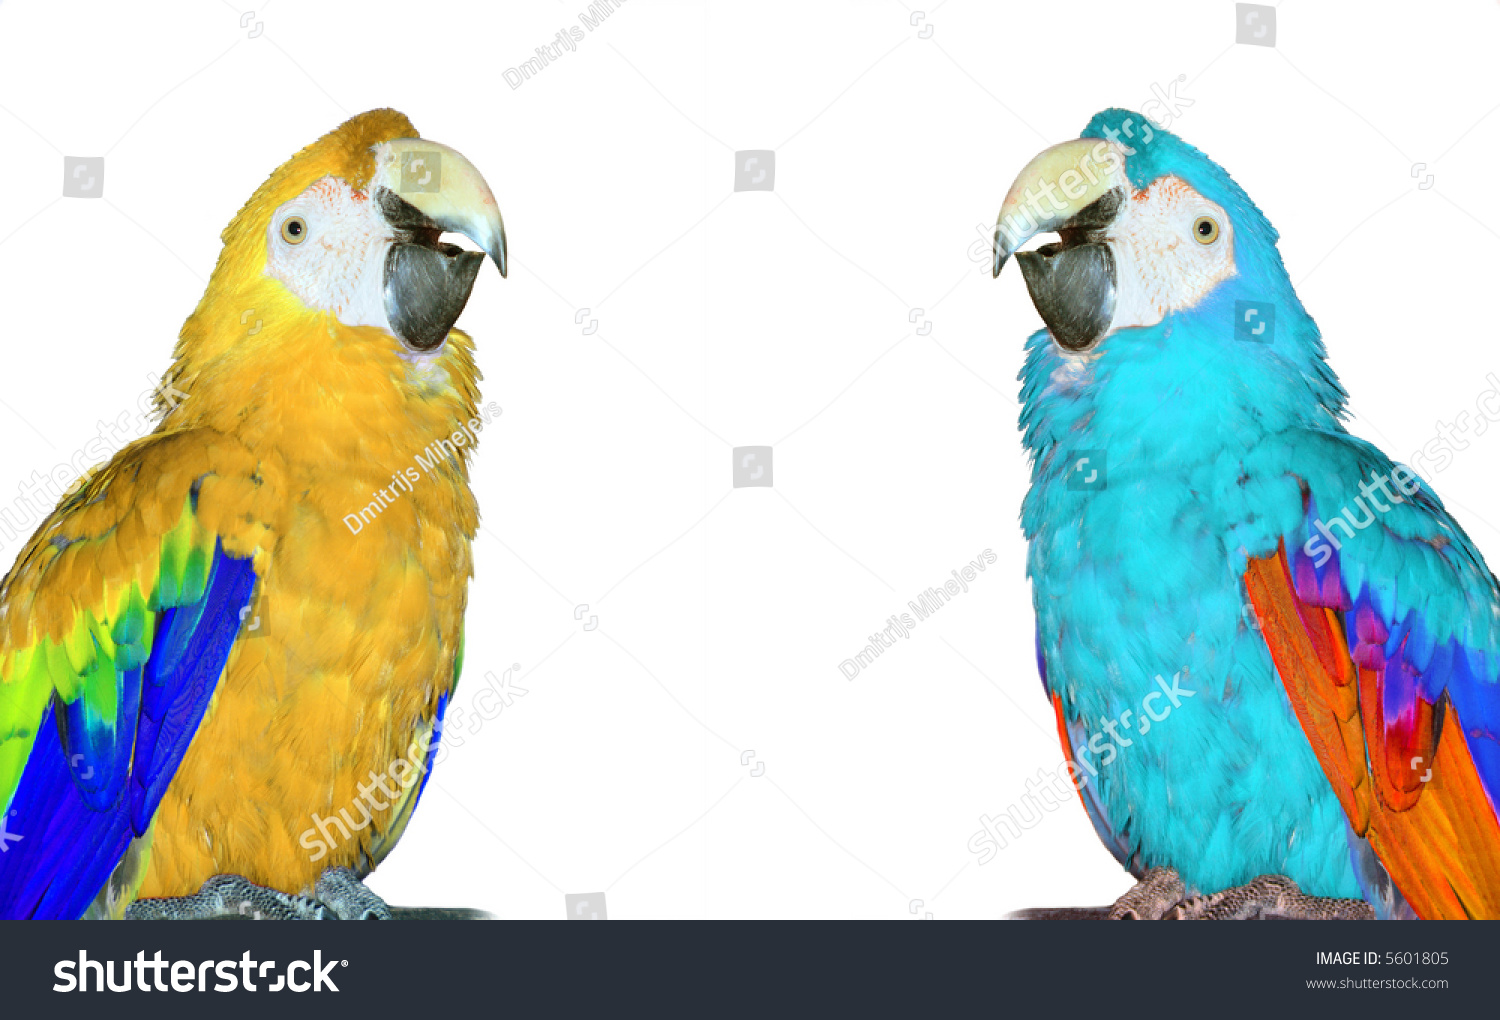 Blue and white macaw